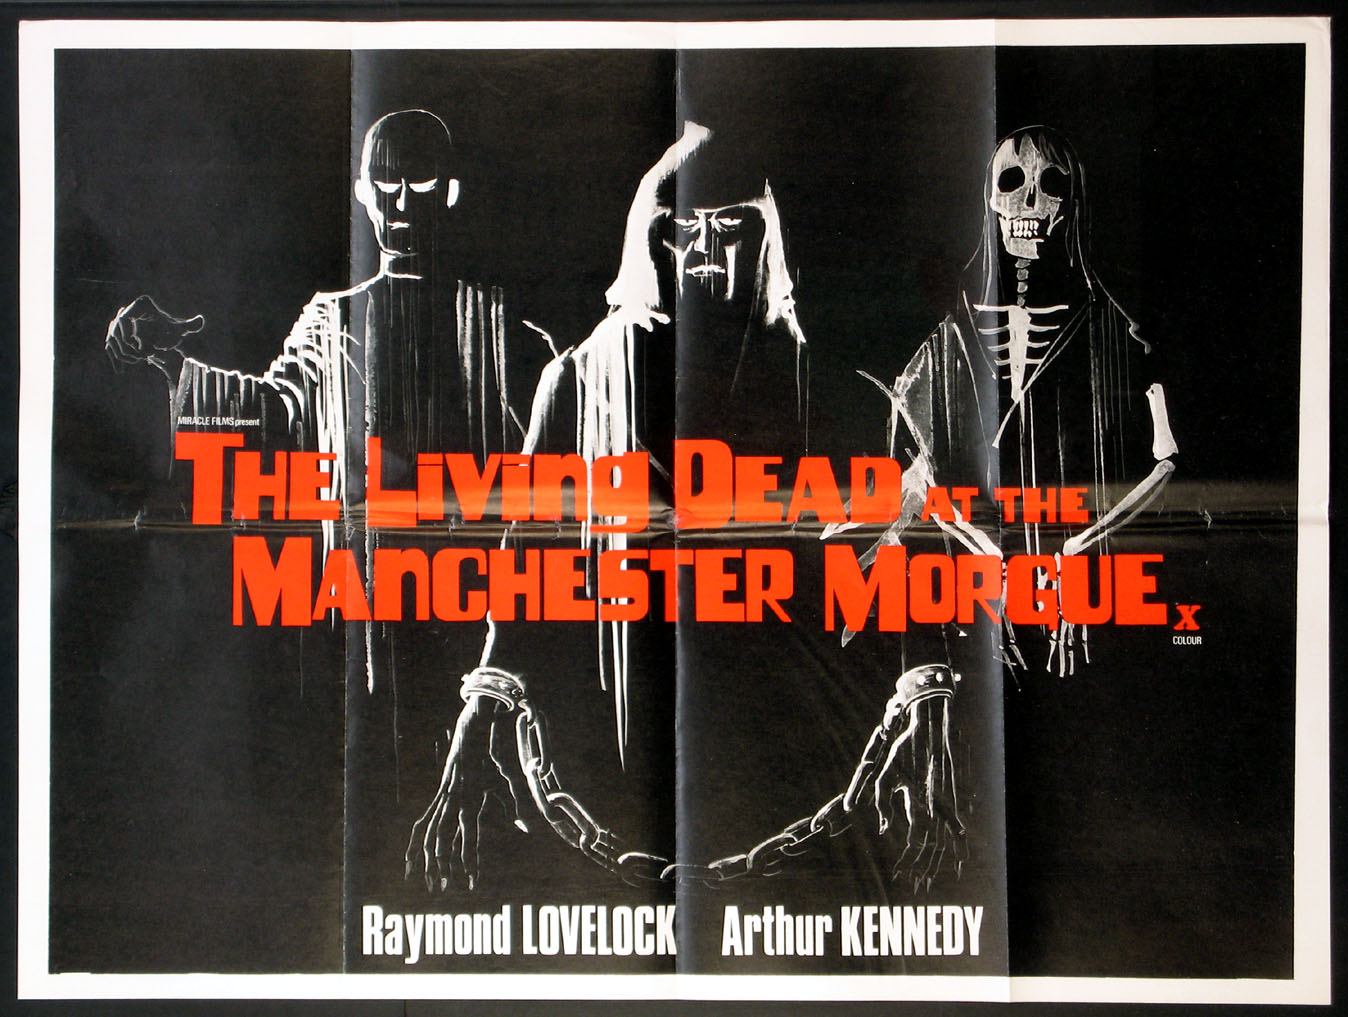 LIVING DEAD AT THE MANCHESTER MORGUE (aka Don't Open the Window, Let Sleeping Corpses Lie) @ FilmPosters.com